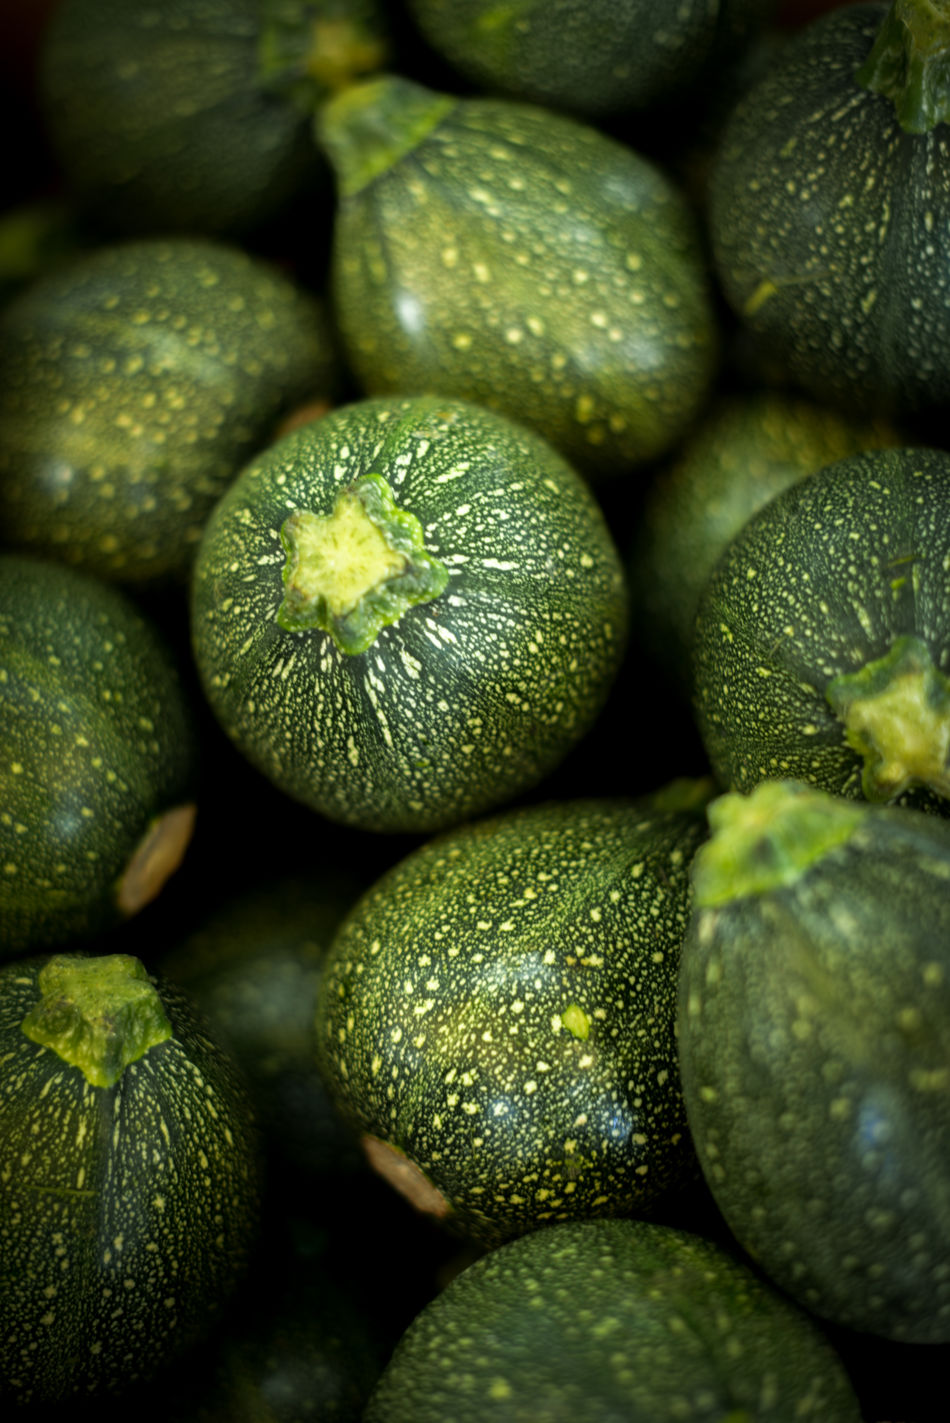 Backgrounds Bio Close Up Close-up Courgette Farm Food Food And Drink Freshness Fruit Full Frame Green Green Color Healthy Healthy Eating Nature No People Organic Outdoors Raw Vitality Vitamins